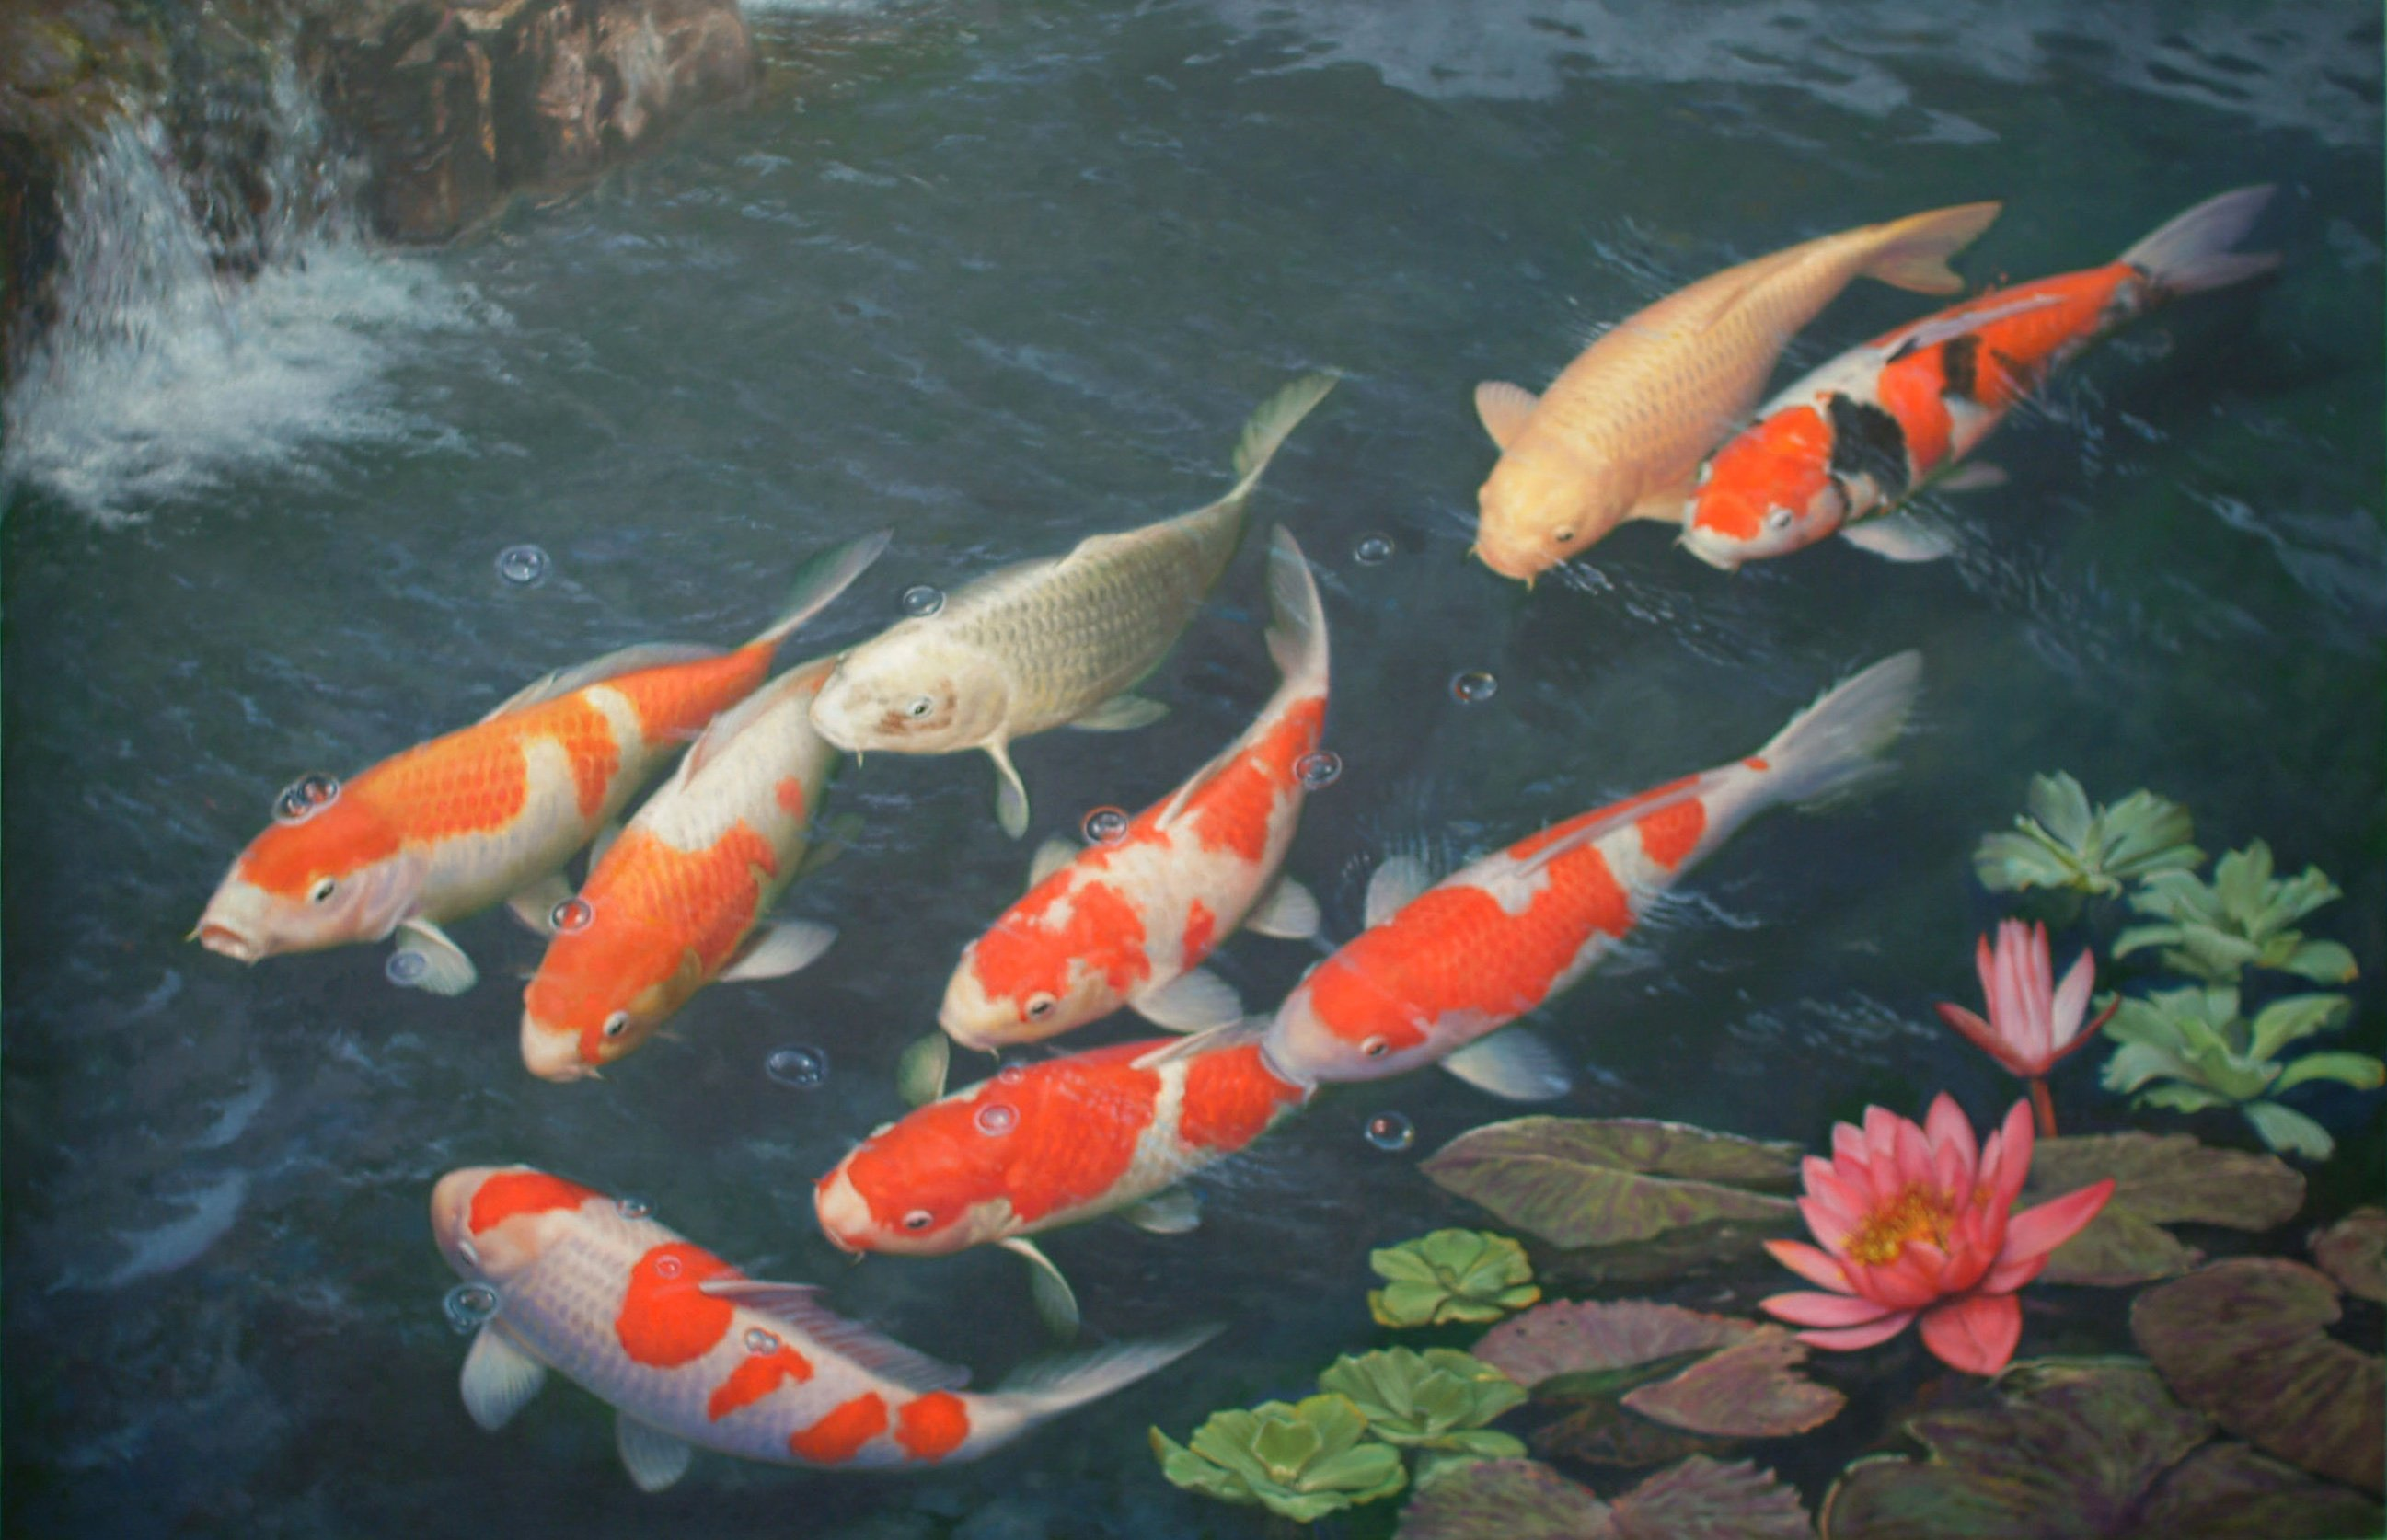 Hd koi fish wallpaper wallpapersafari for Koi carp fish information